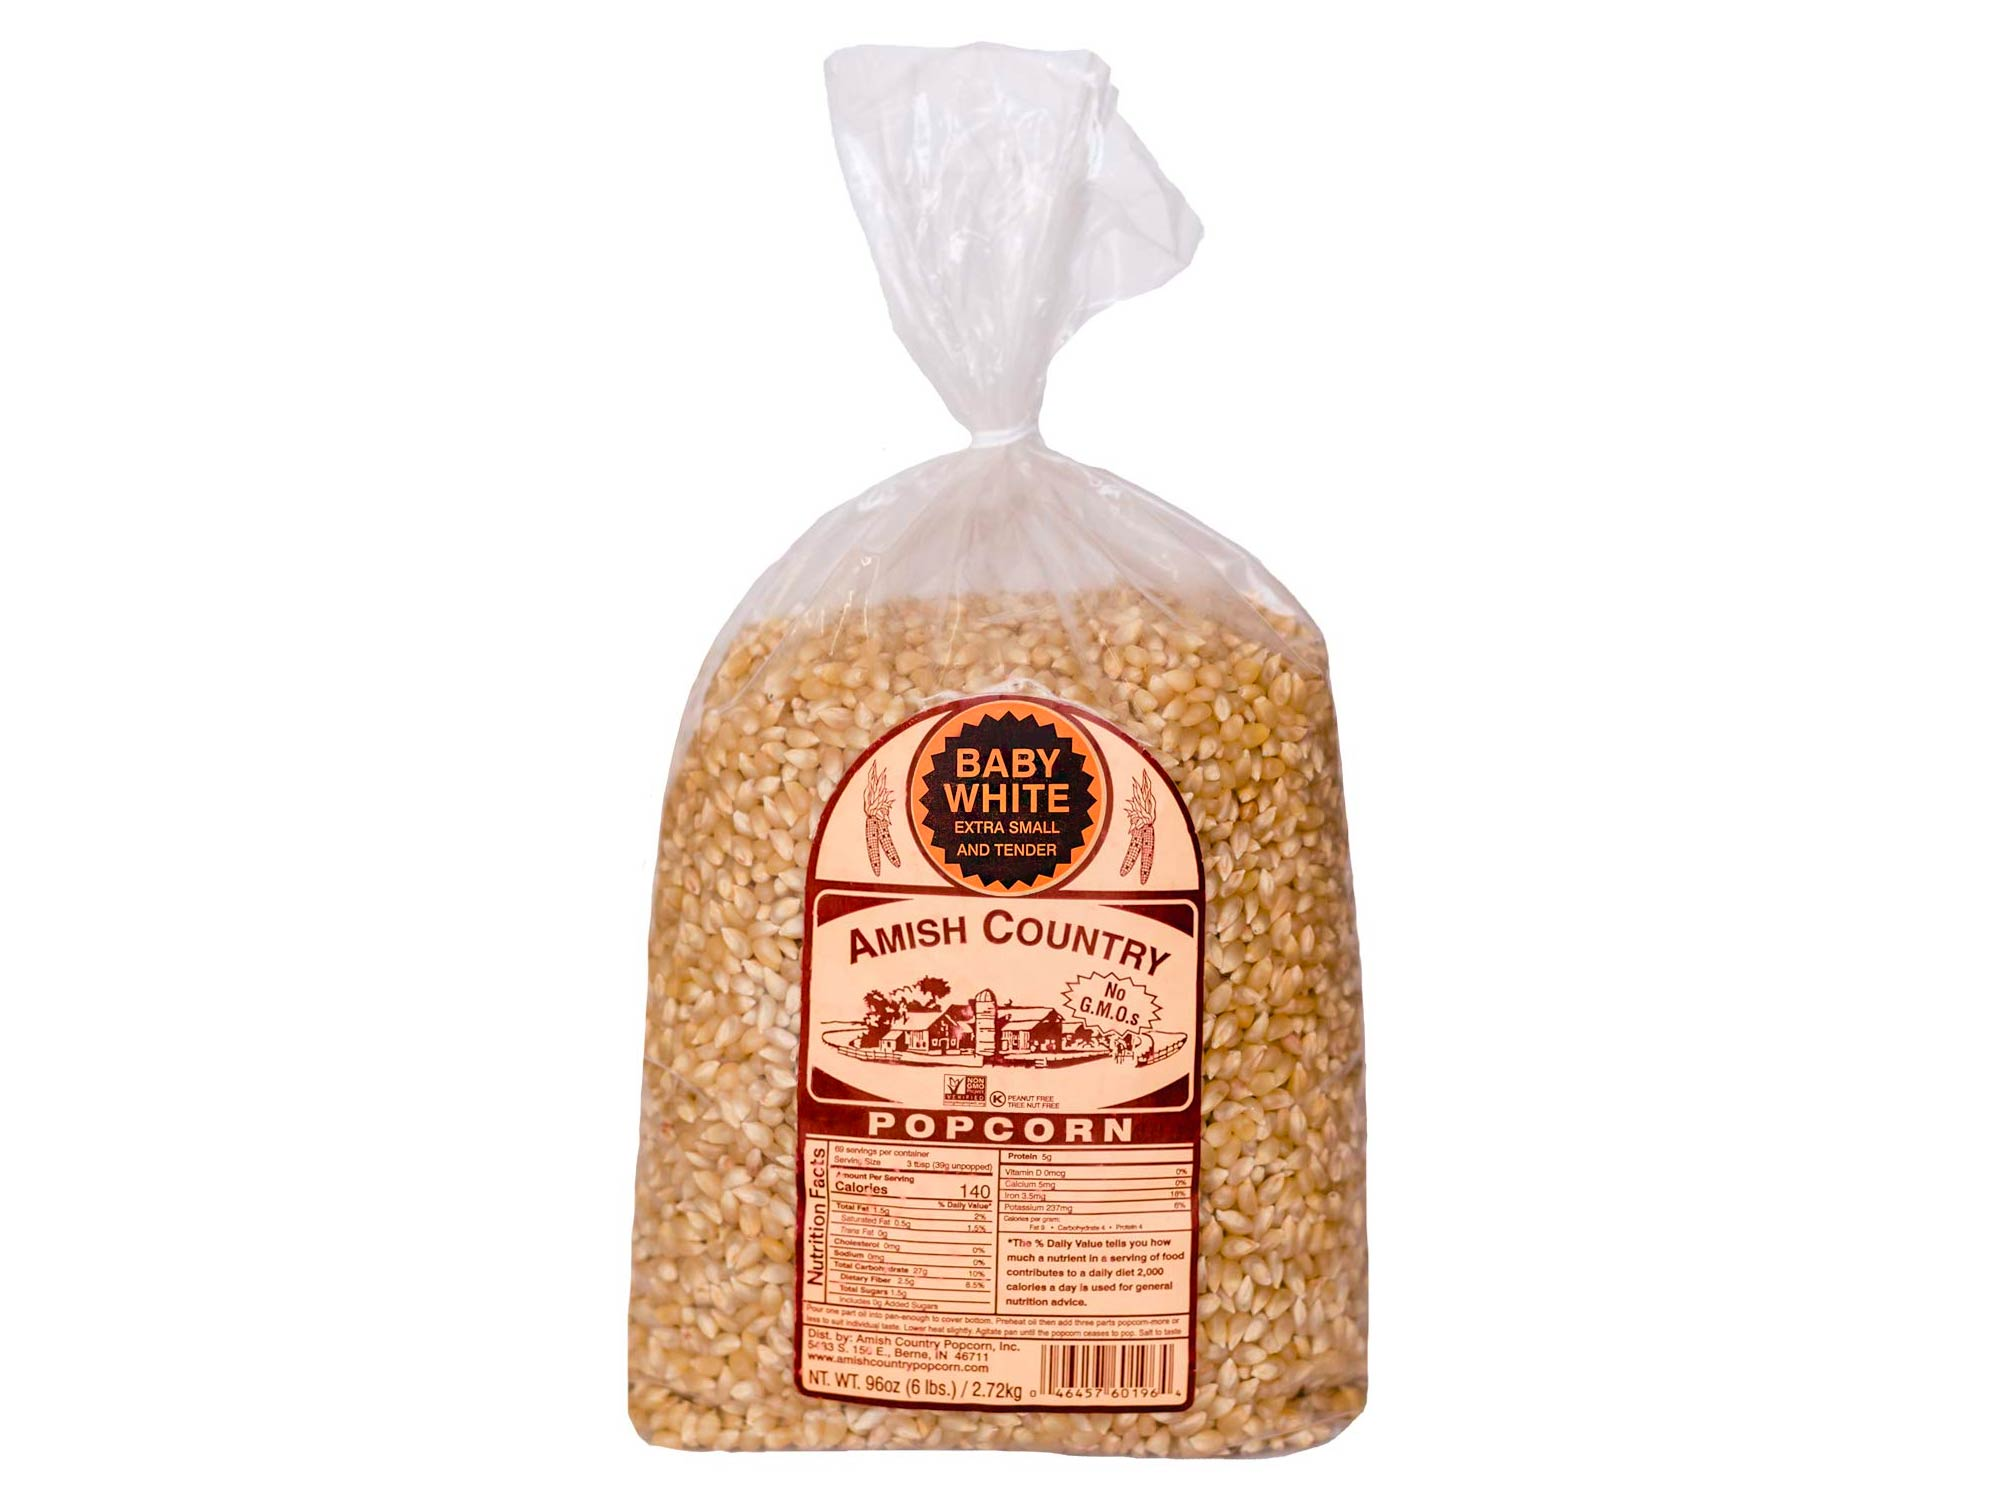 Amish Country Popcorn | 6 lb Bag | Baby White Popcorn Kernels | Small and Tender | Old Fashioned with Recipe Guide (Baby White, 6 Lb Bag)